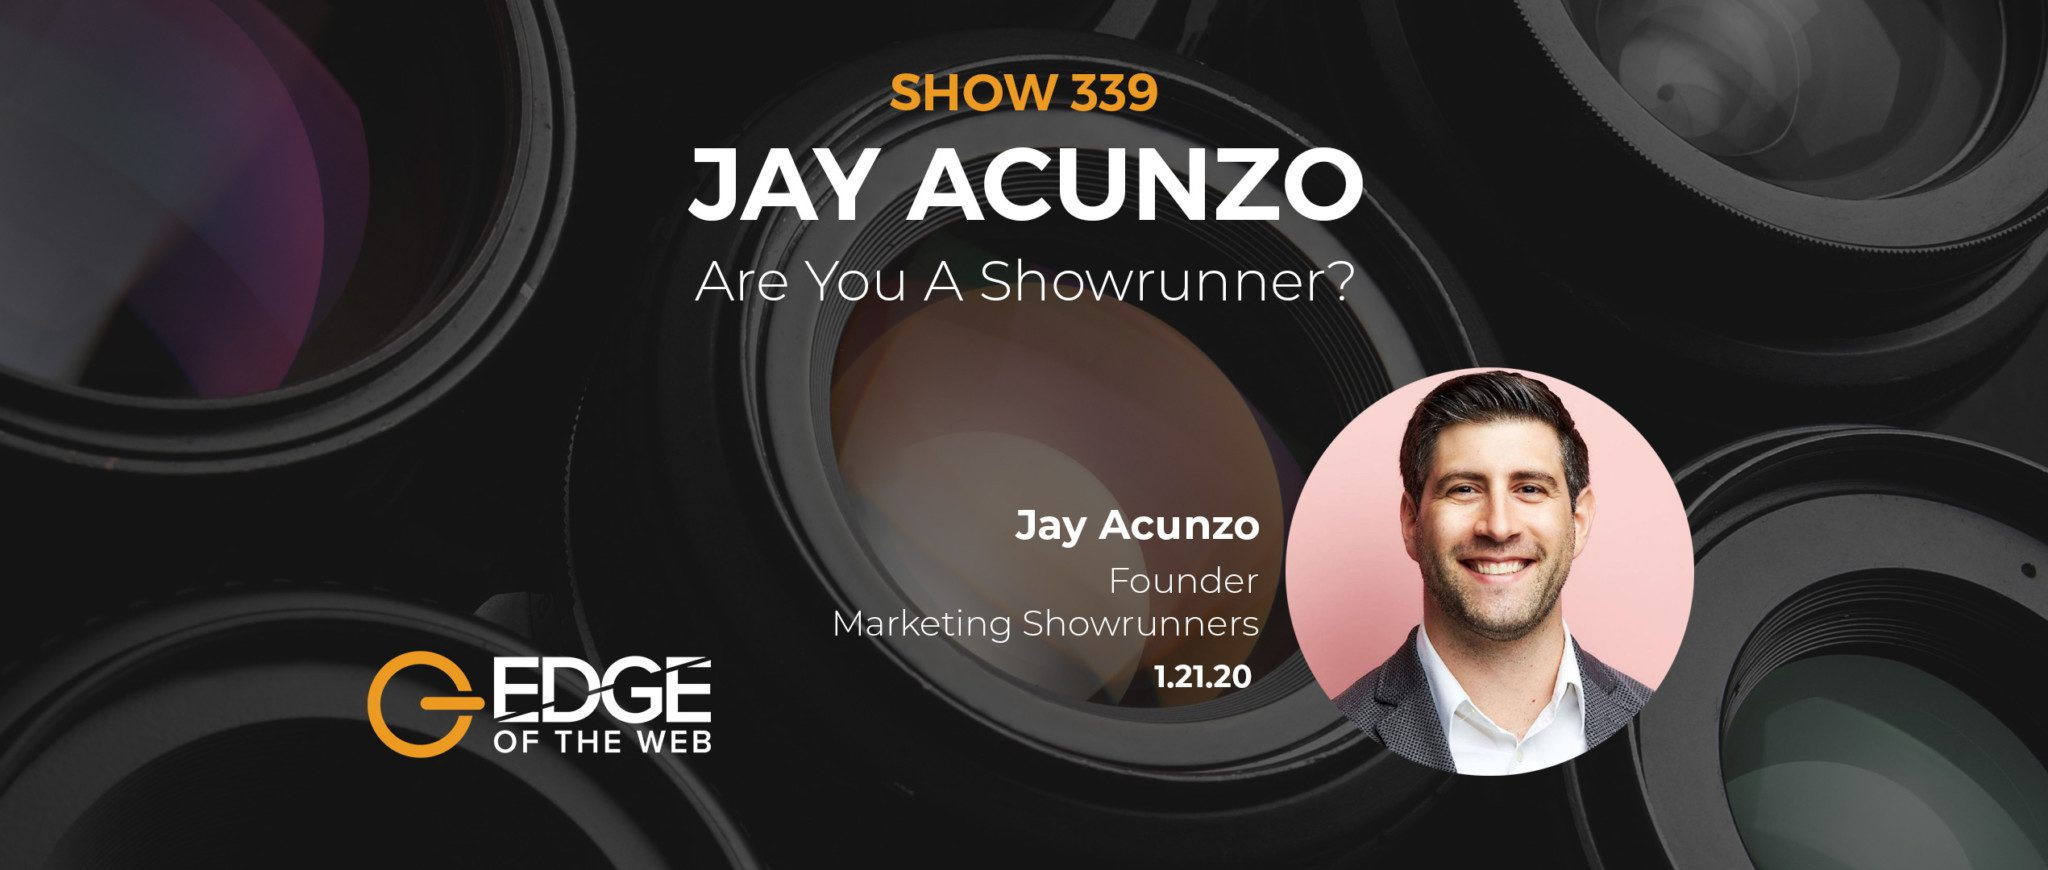 Show 339: Are you a showrunner? Featuring Jay Acunzo